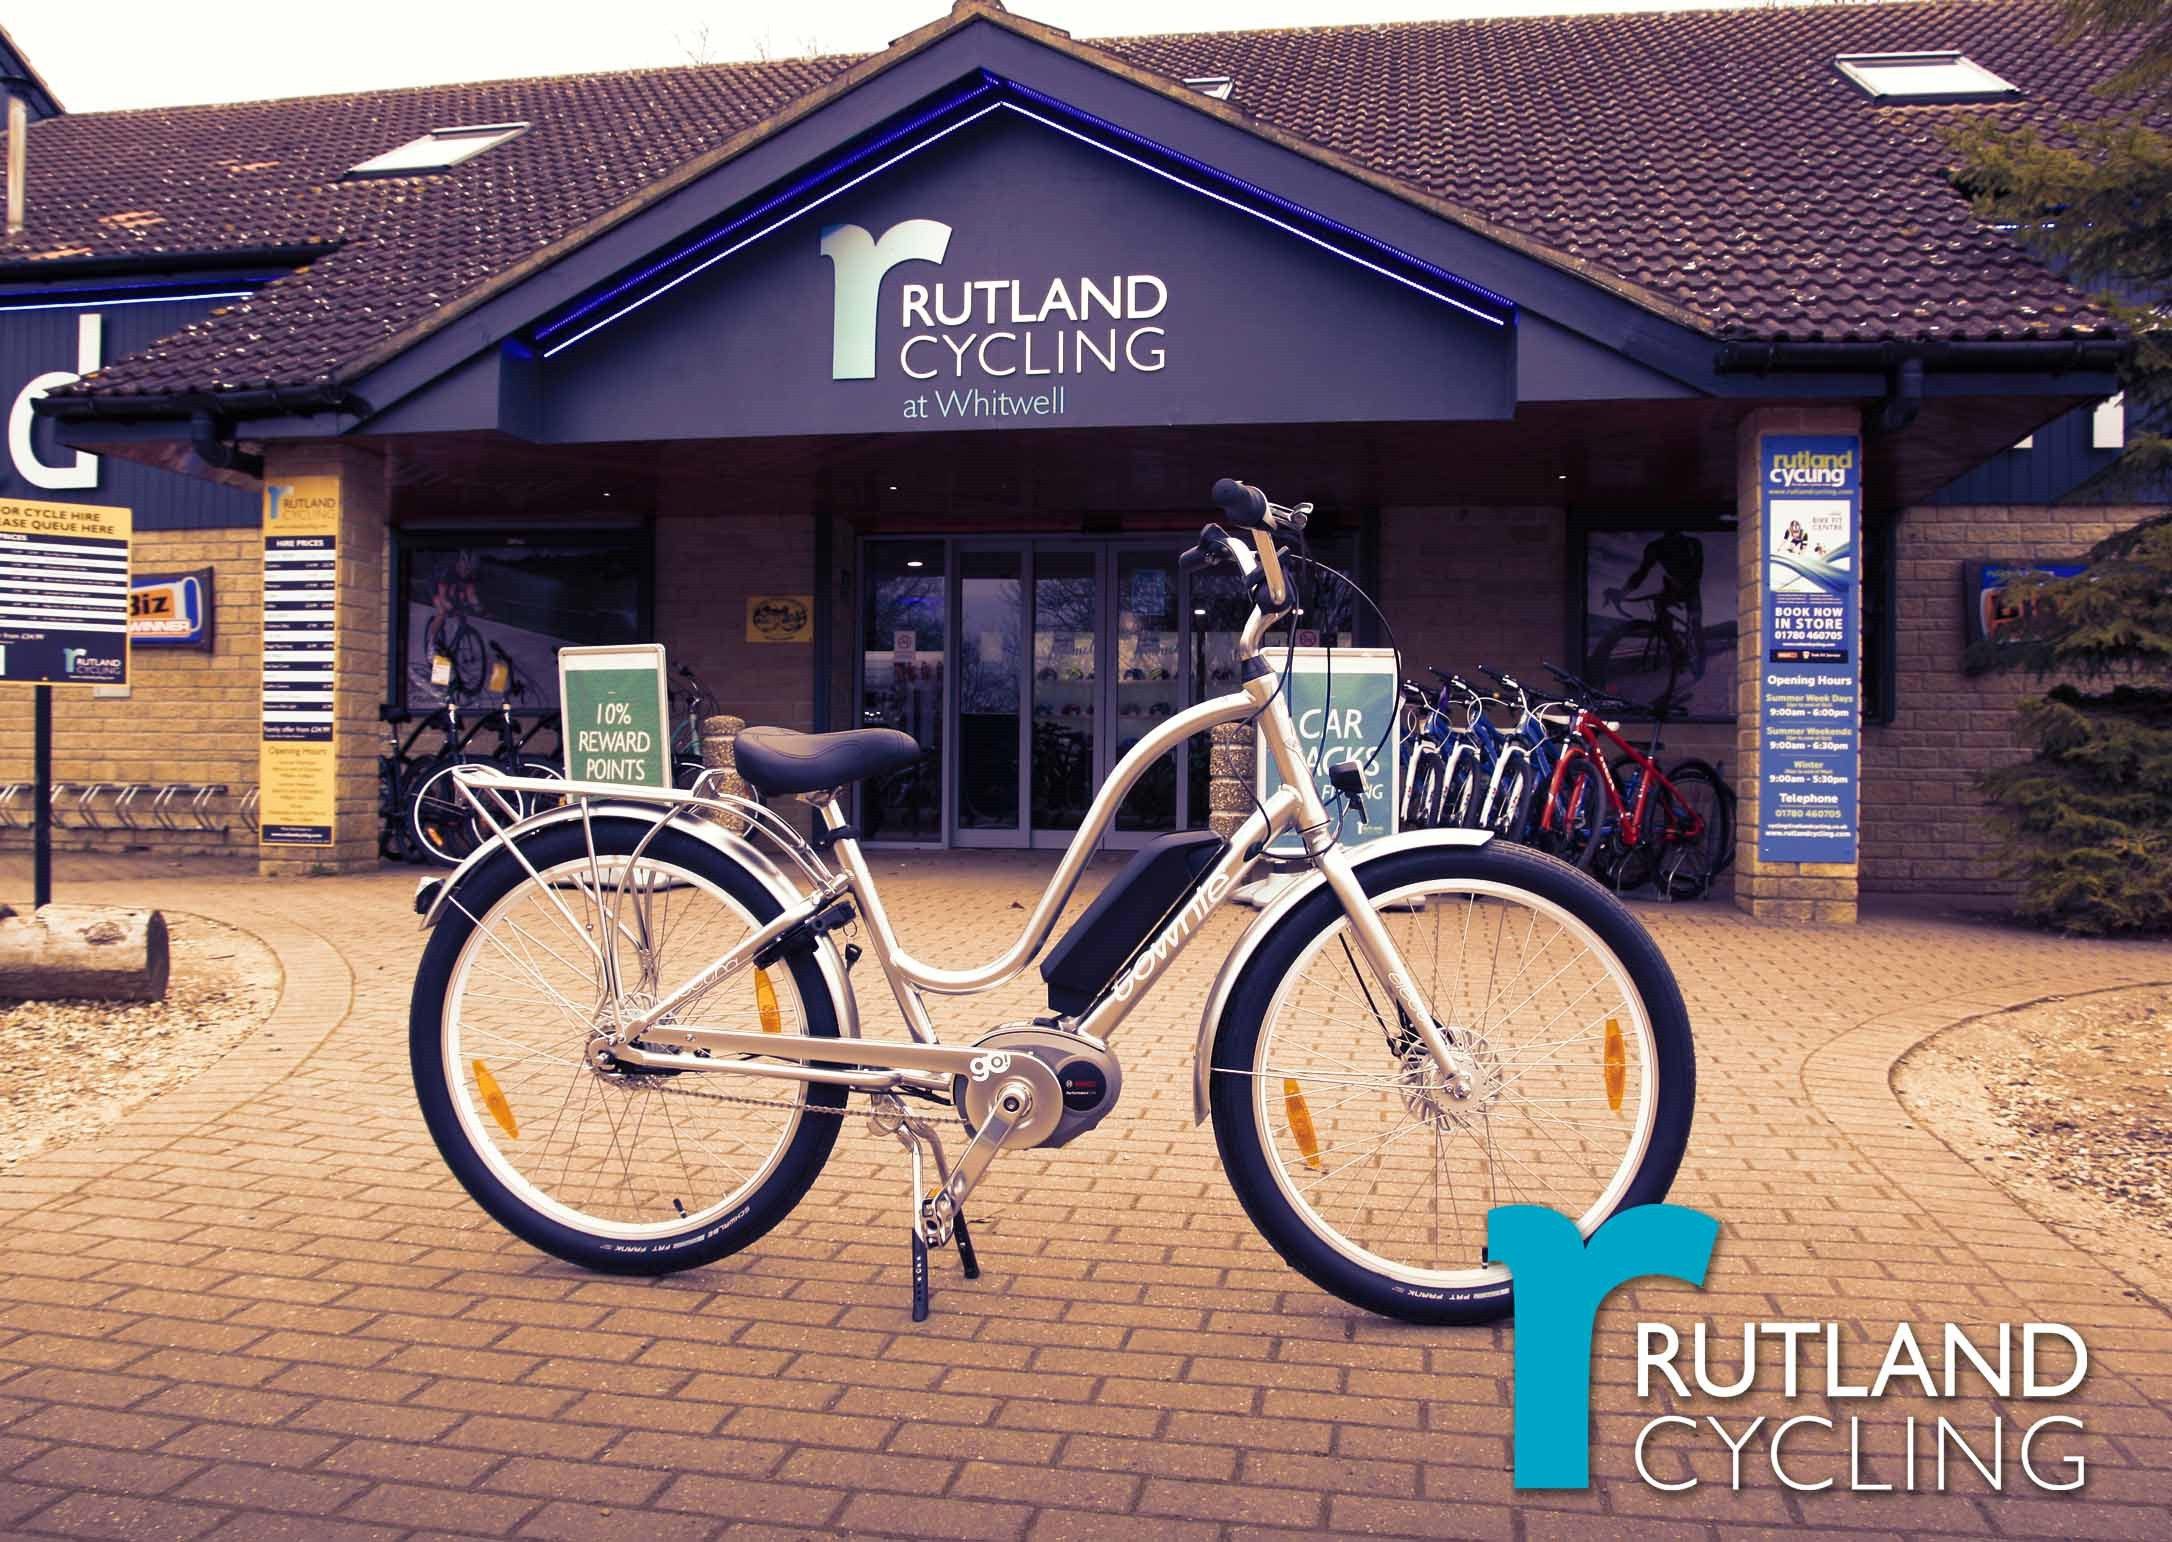 Electra E-bikes at Rutland Cycling Whitwell